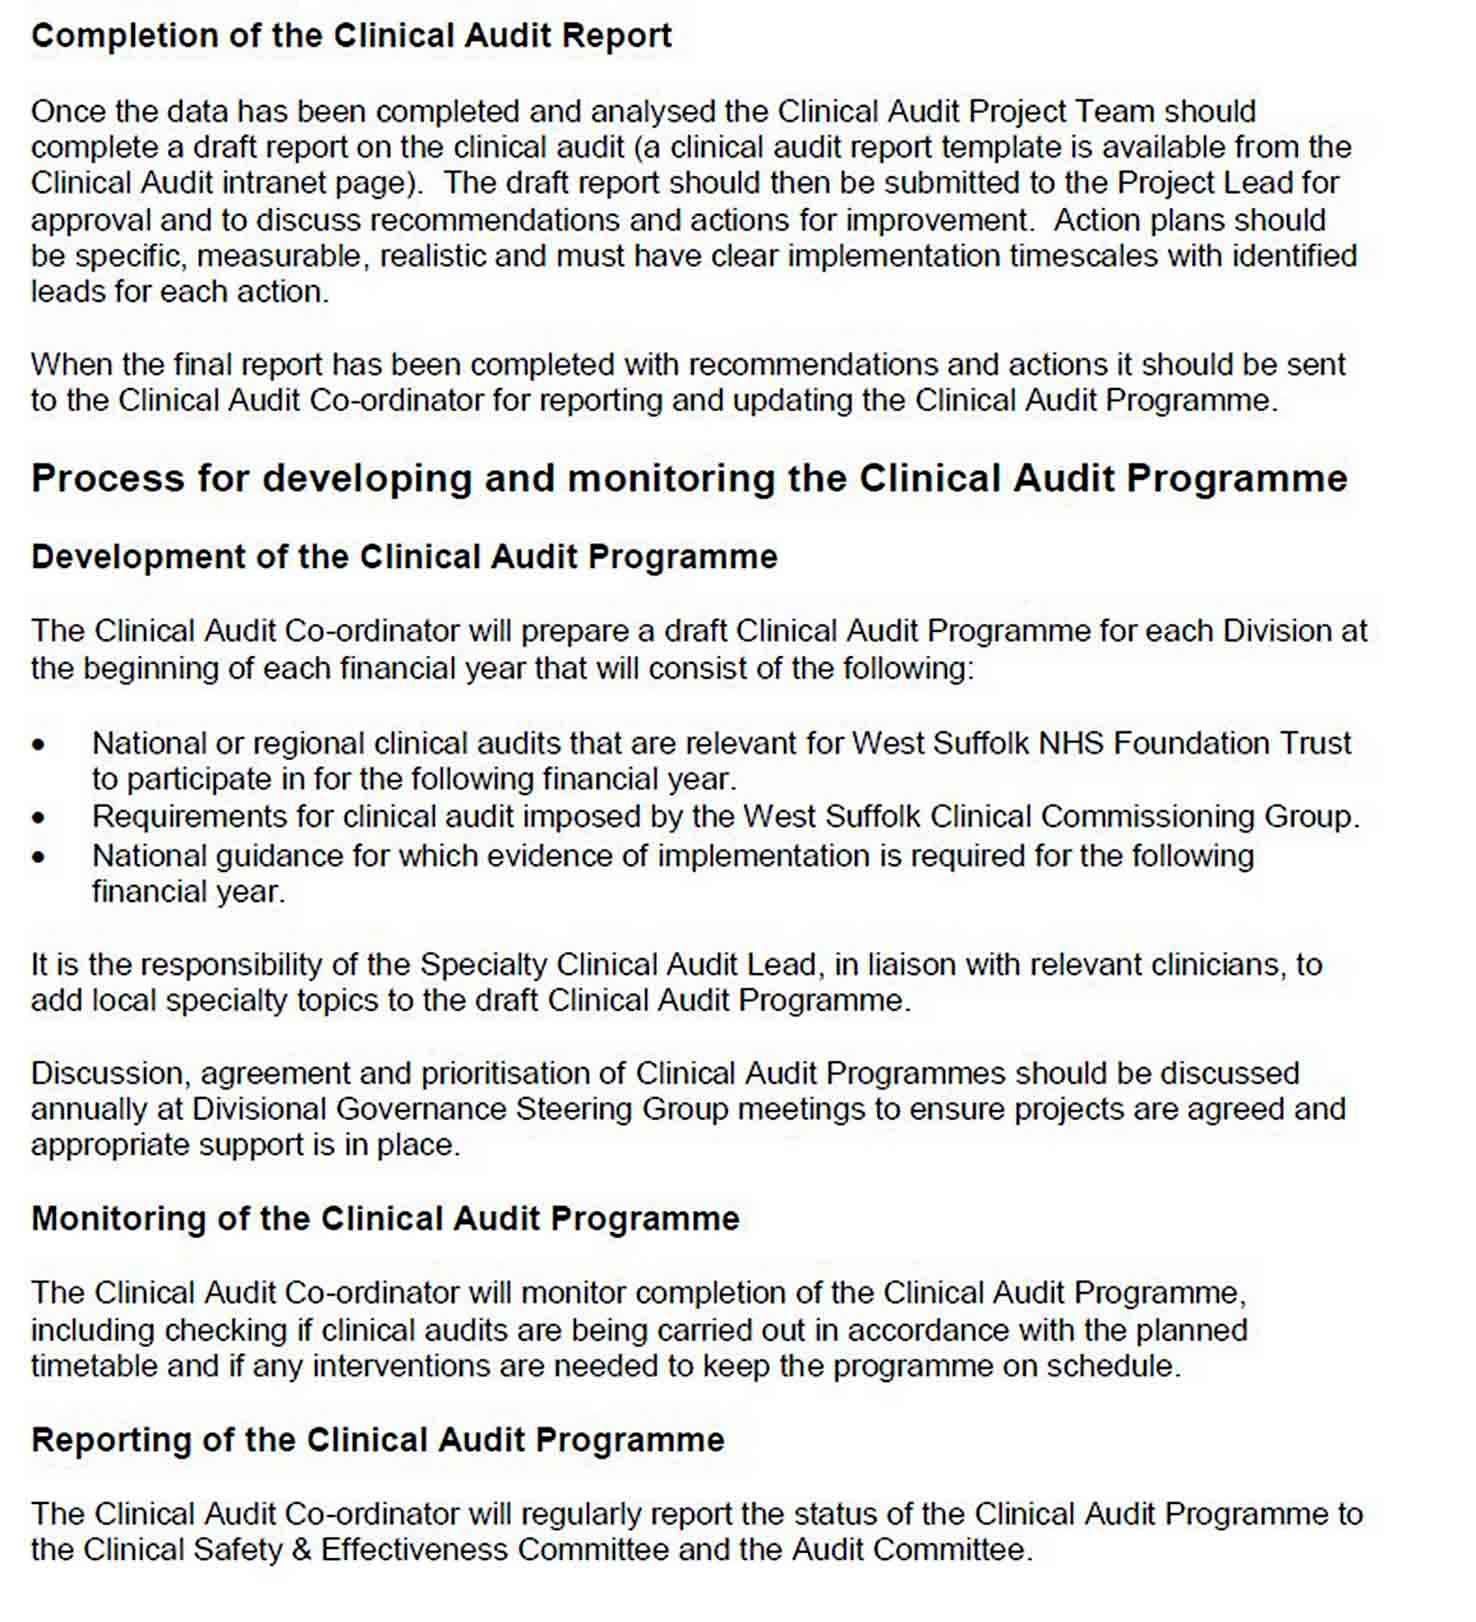 Orthotic Department Clinical Audit Report Template sample